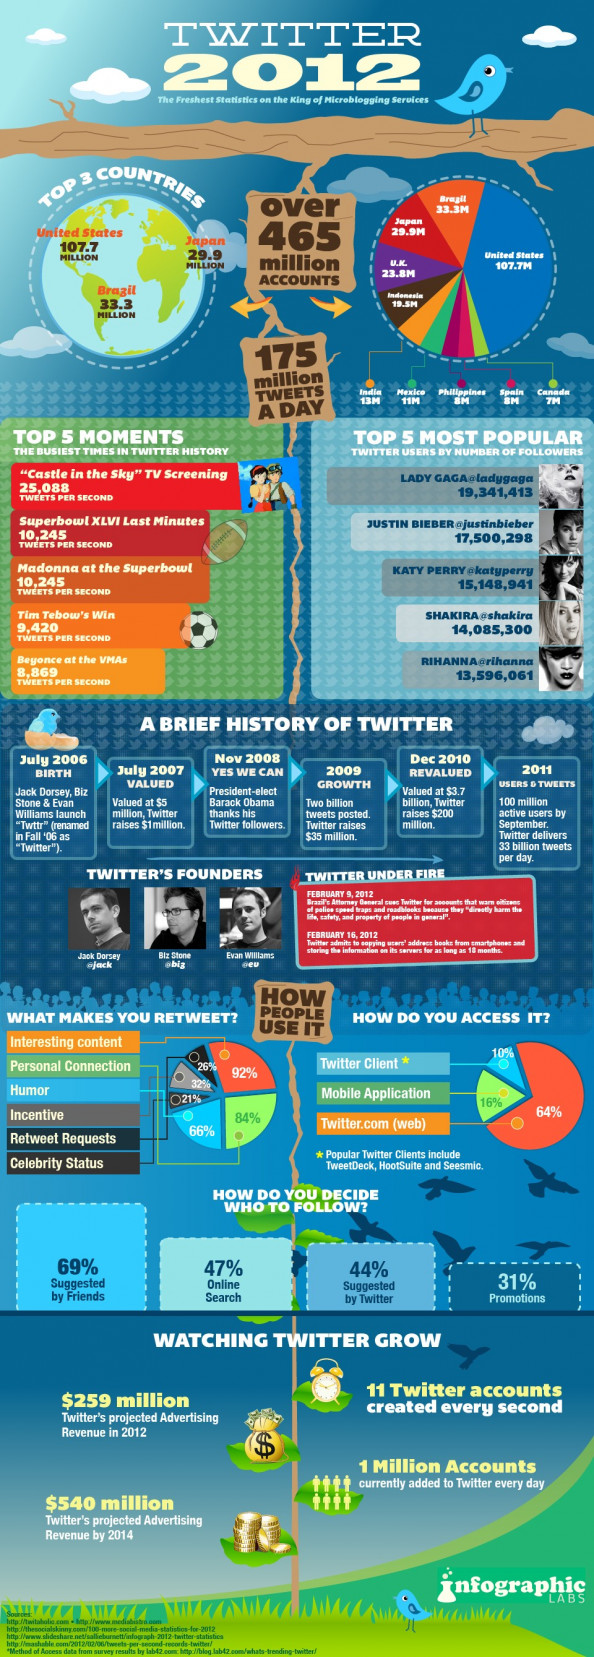 Just How Big Is Twitter In 2012? Infographic